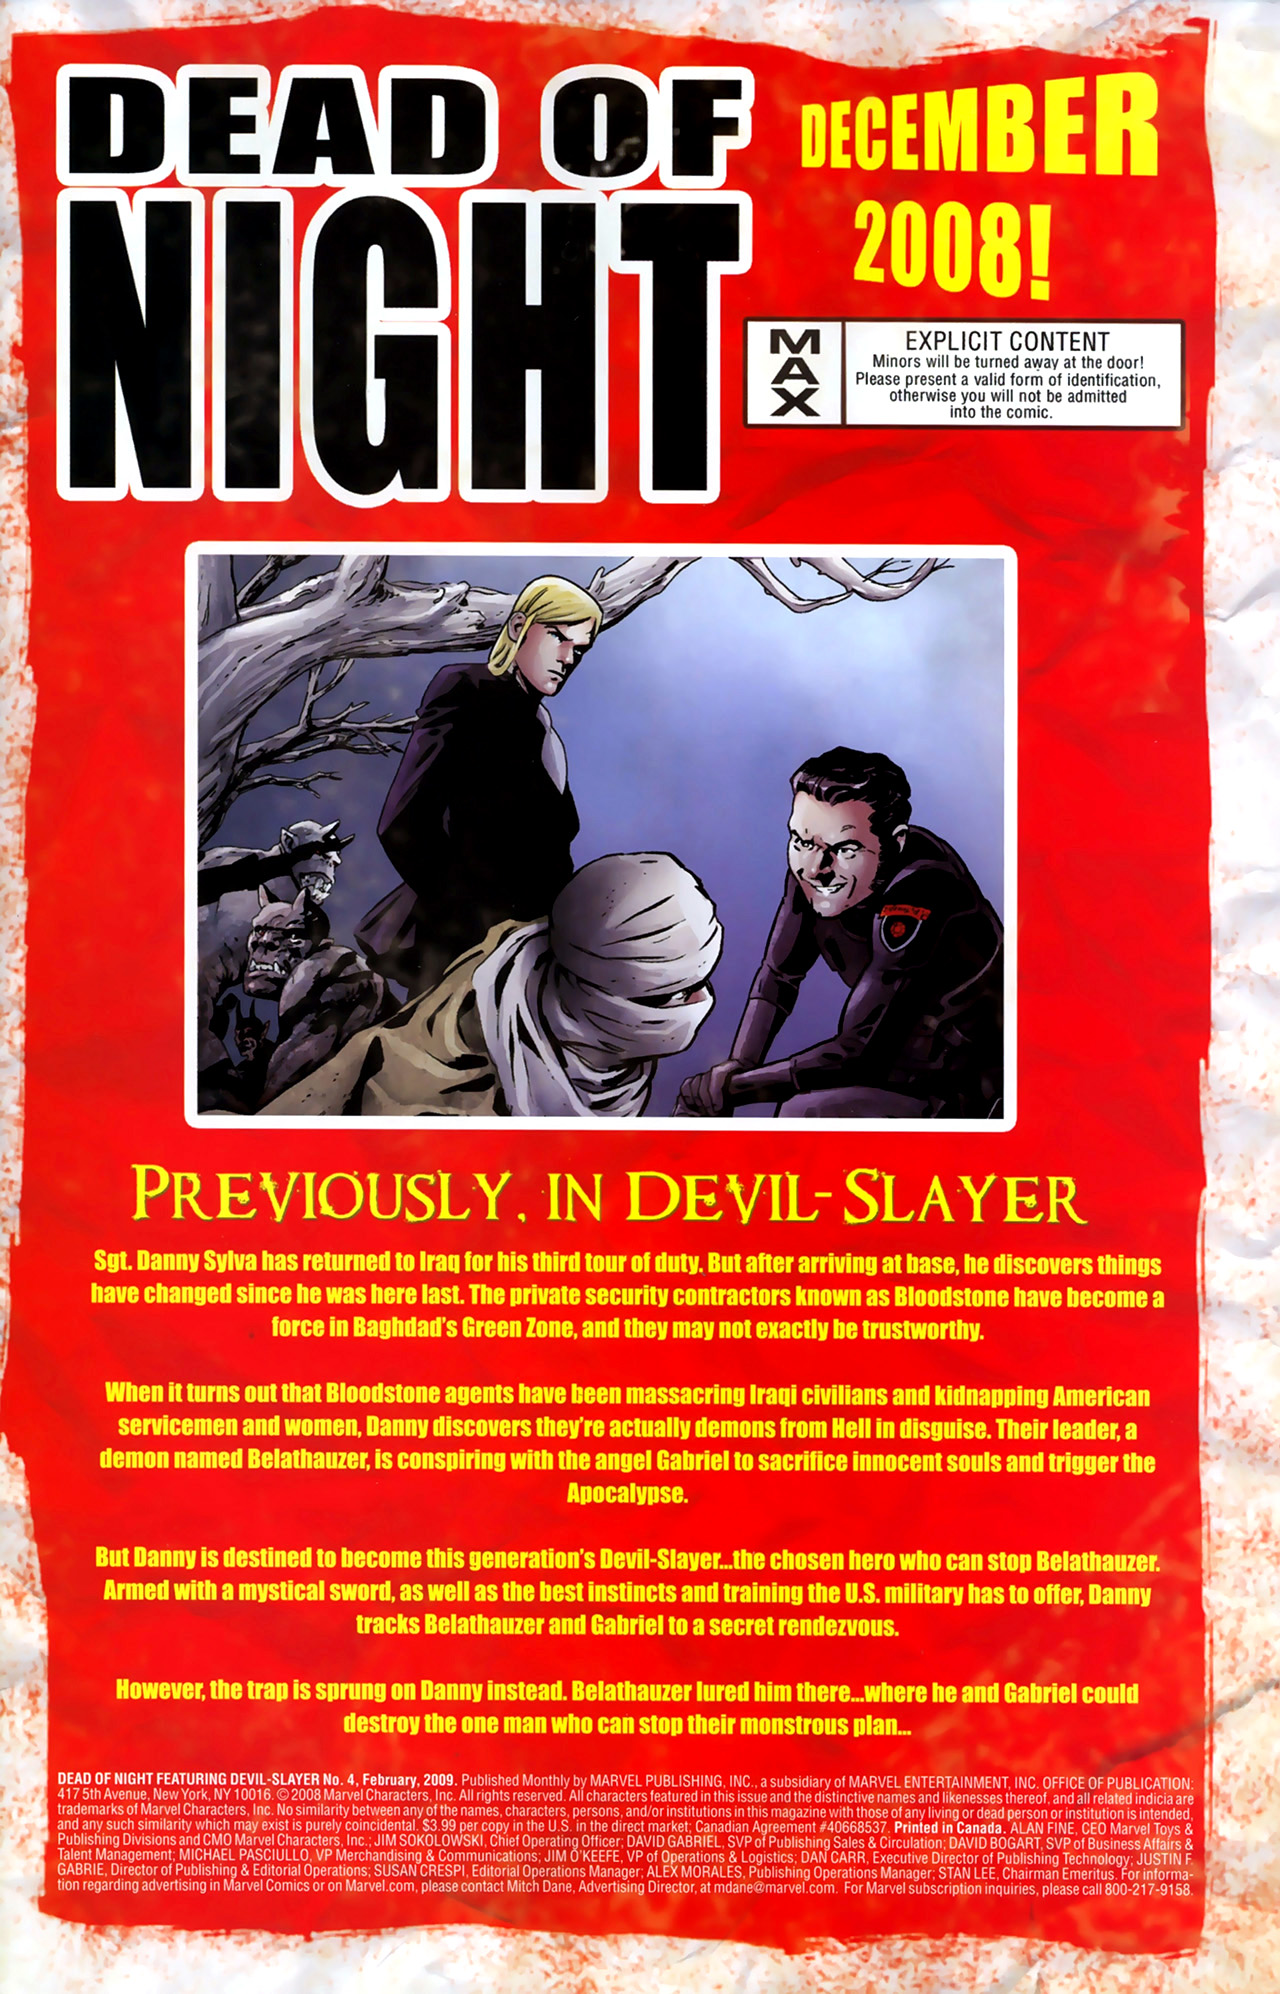 Read online Dead of Night Featuring Devil-Slayer comic -  Issue #4 - 2